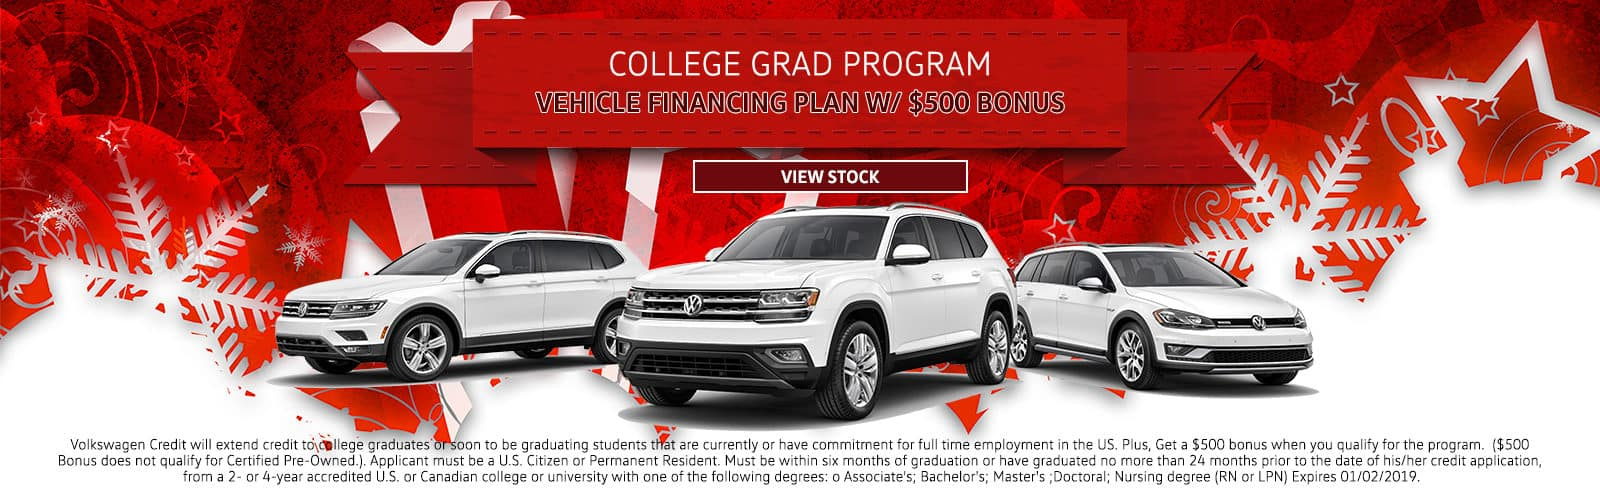 AuburnVW_Holiday_College Grad Program